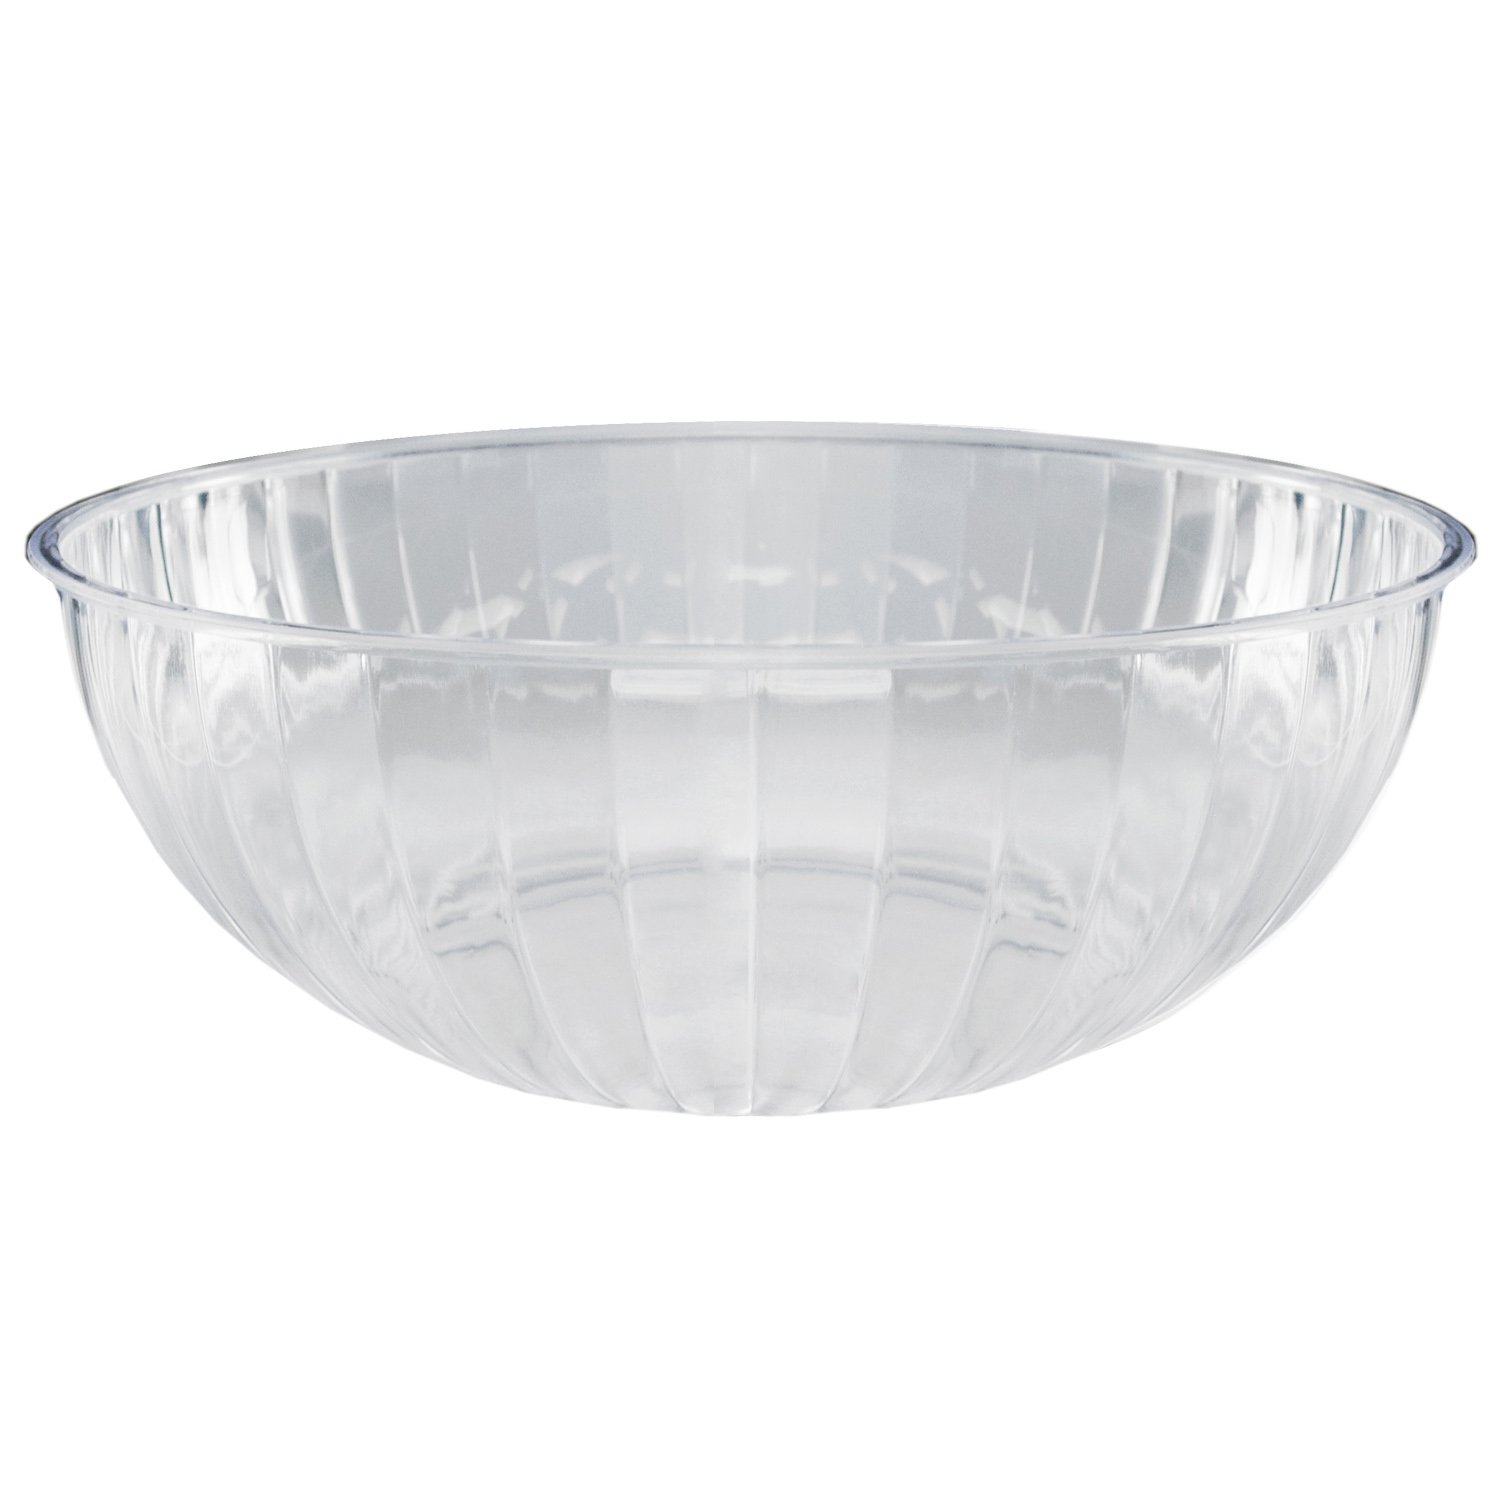 Party Essentials N674563 Hard Plastic 192-Ounce Serving Bowl, Clear